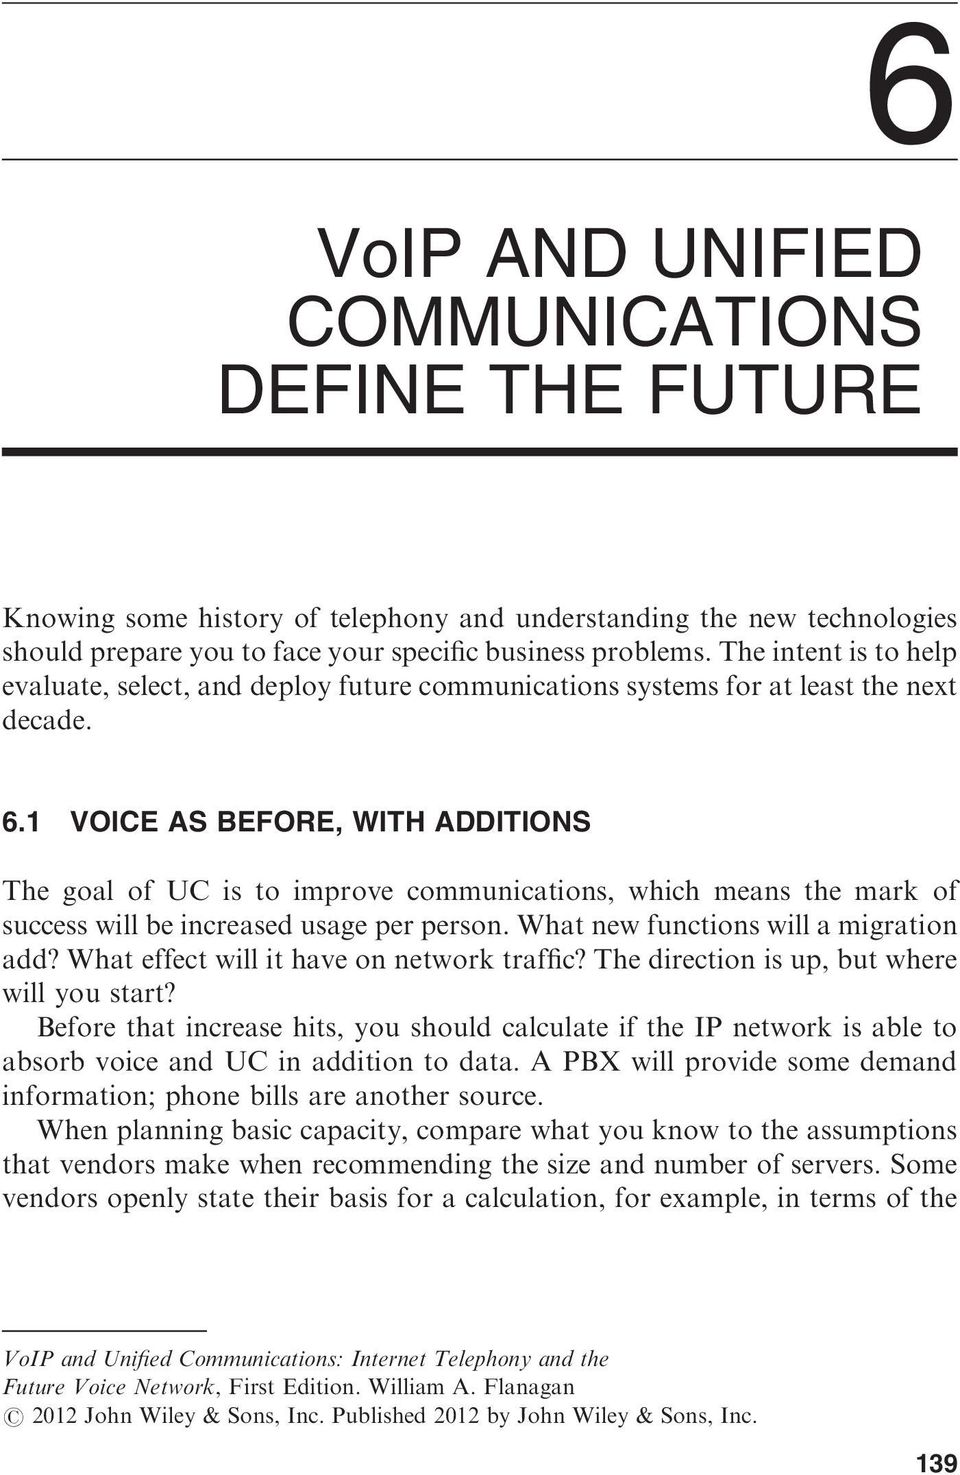 1 VOICE AS BEFORE, WITH ADDITIONS The goal of UC is to improve communications, which means the mark of success will be increased usage per person. What new functions will a migration add?